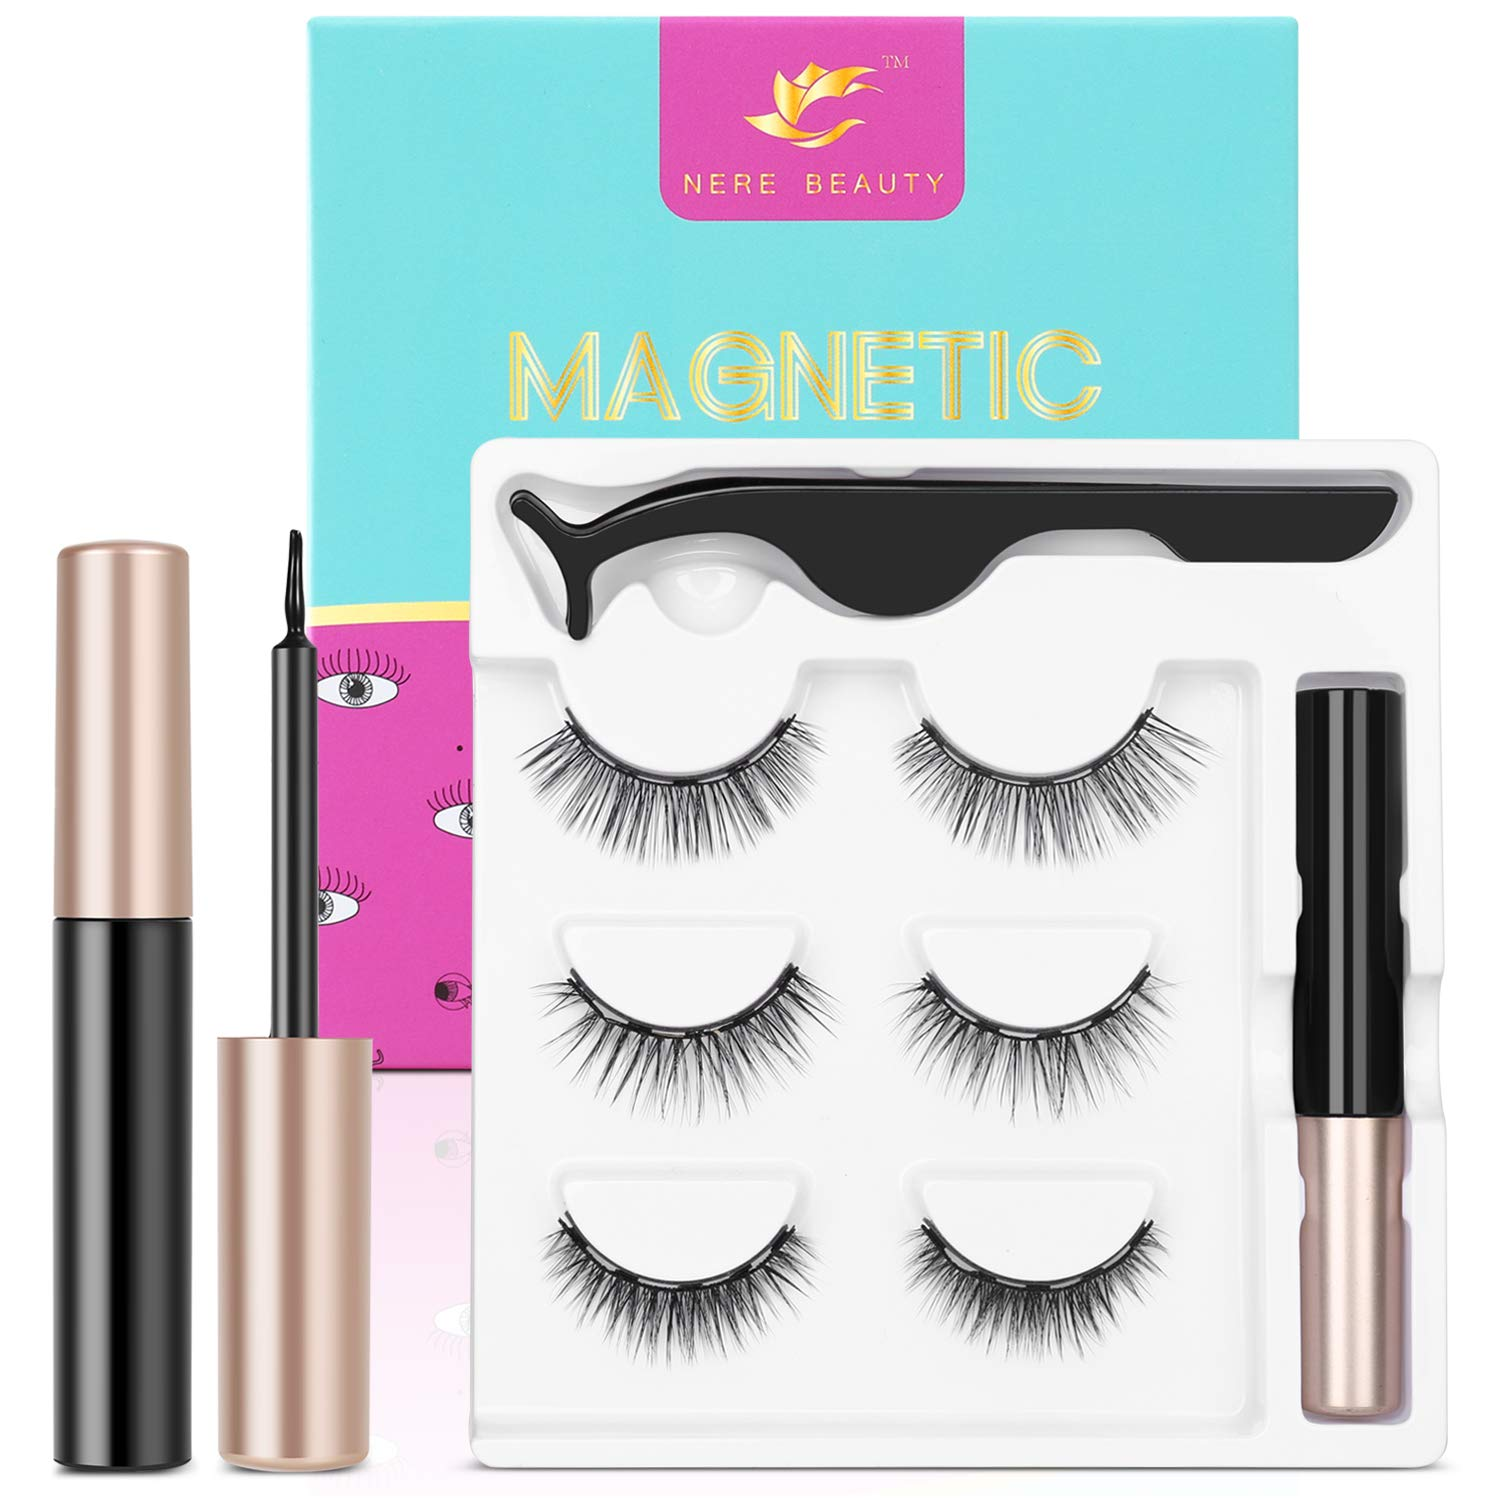 2020 Upgraded Magnetic Eyelashes and Eyeliner Kit, Magnetic Eyeliner with Natural Look Reusable Premium Magnetic Eyelashes Athena 3 pairs NERE BEAUTY